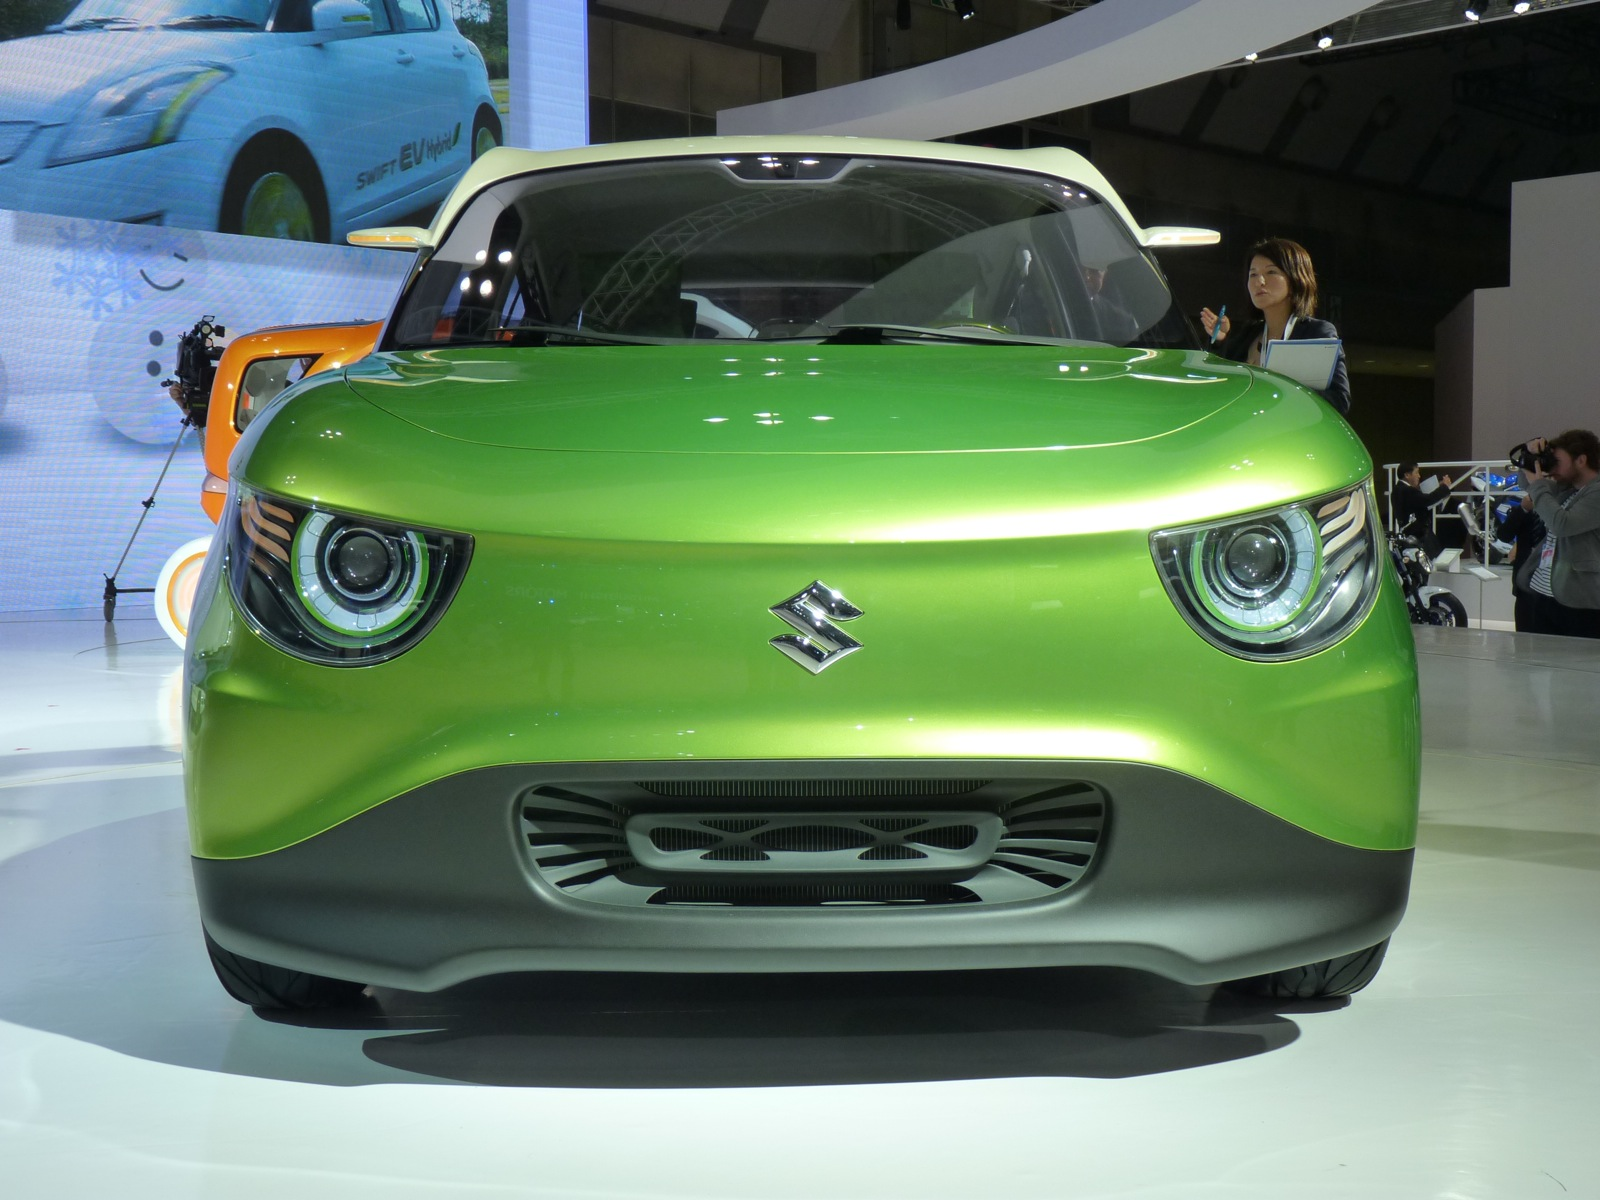 The Best Car Tech And Design At The 2011 Tokyo Motor Show